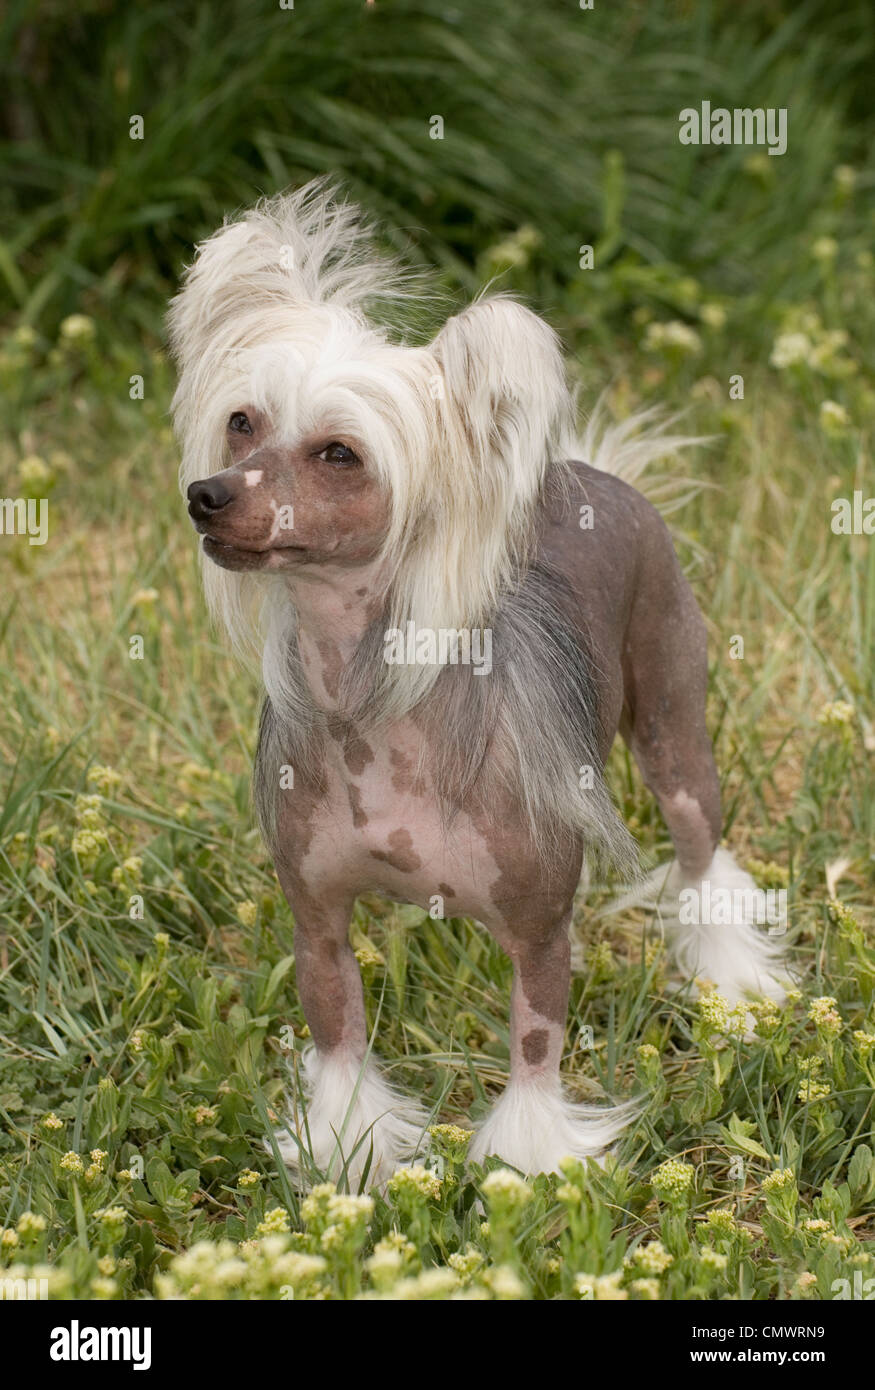 Chinese Crested standing - Stock Image